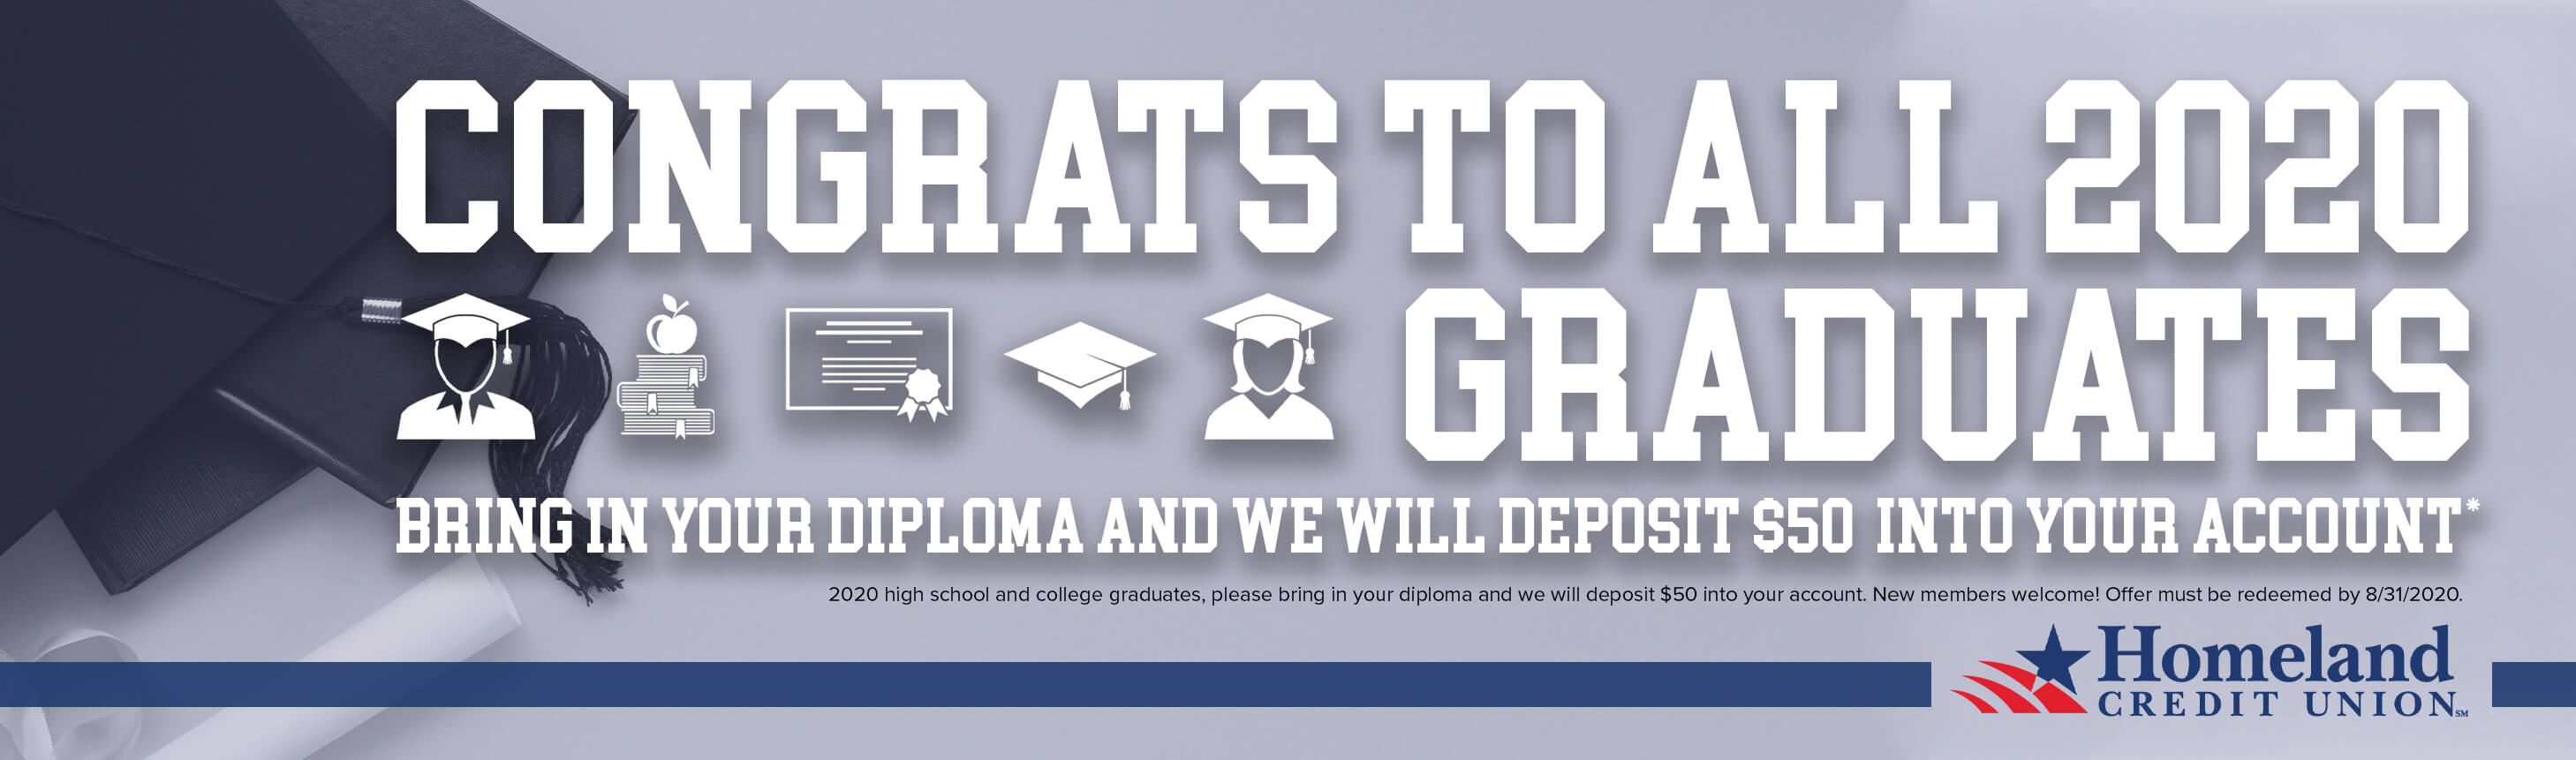 Congrats to all 2020 graduates! Bring in your diploma and we will deposit $50 into your account*. *2020 high school and college graduates, please bring in your diploma and we will deposit $50 into your account. New members welcome! Offer must be redeemed by 8/31/2020.